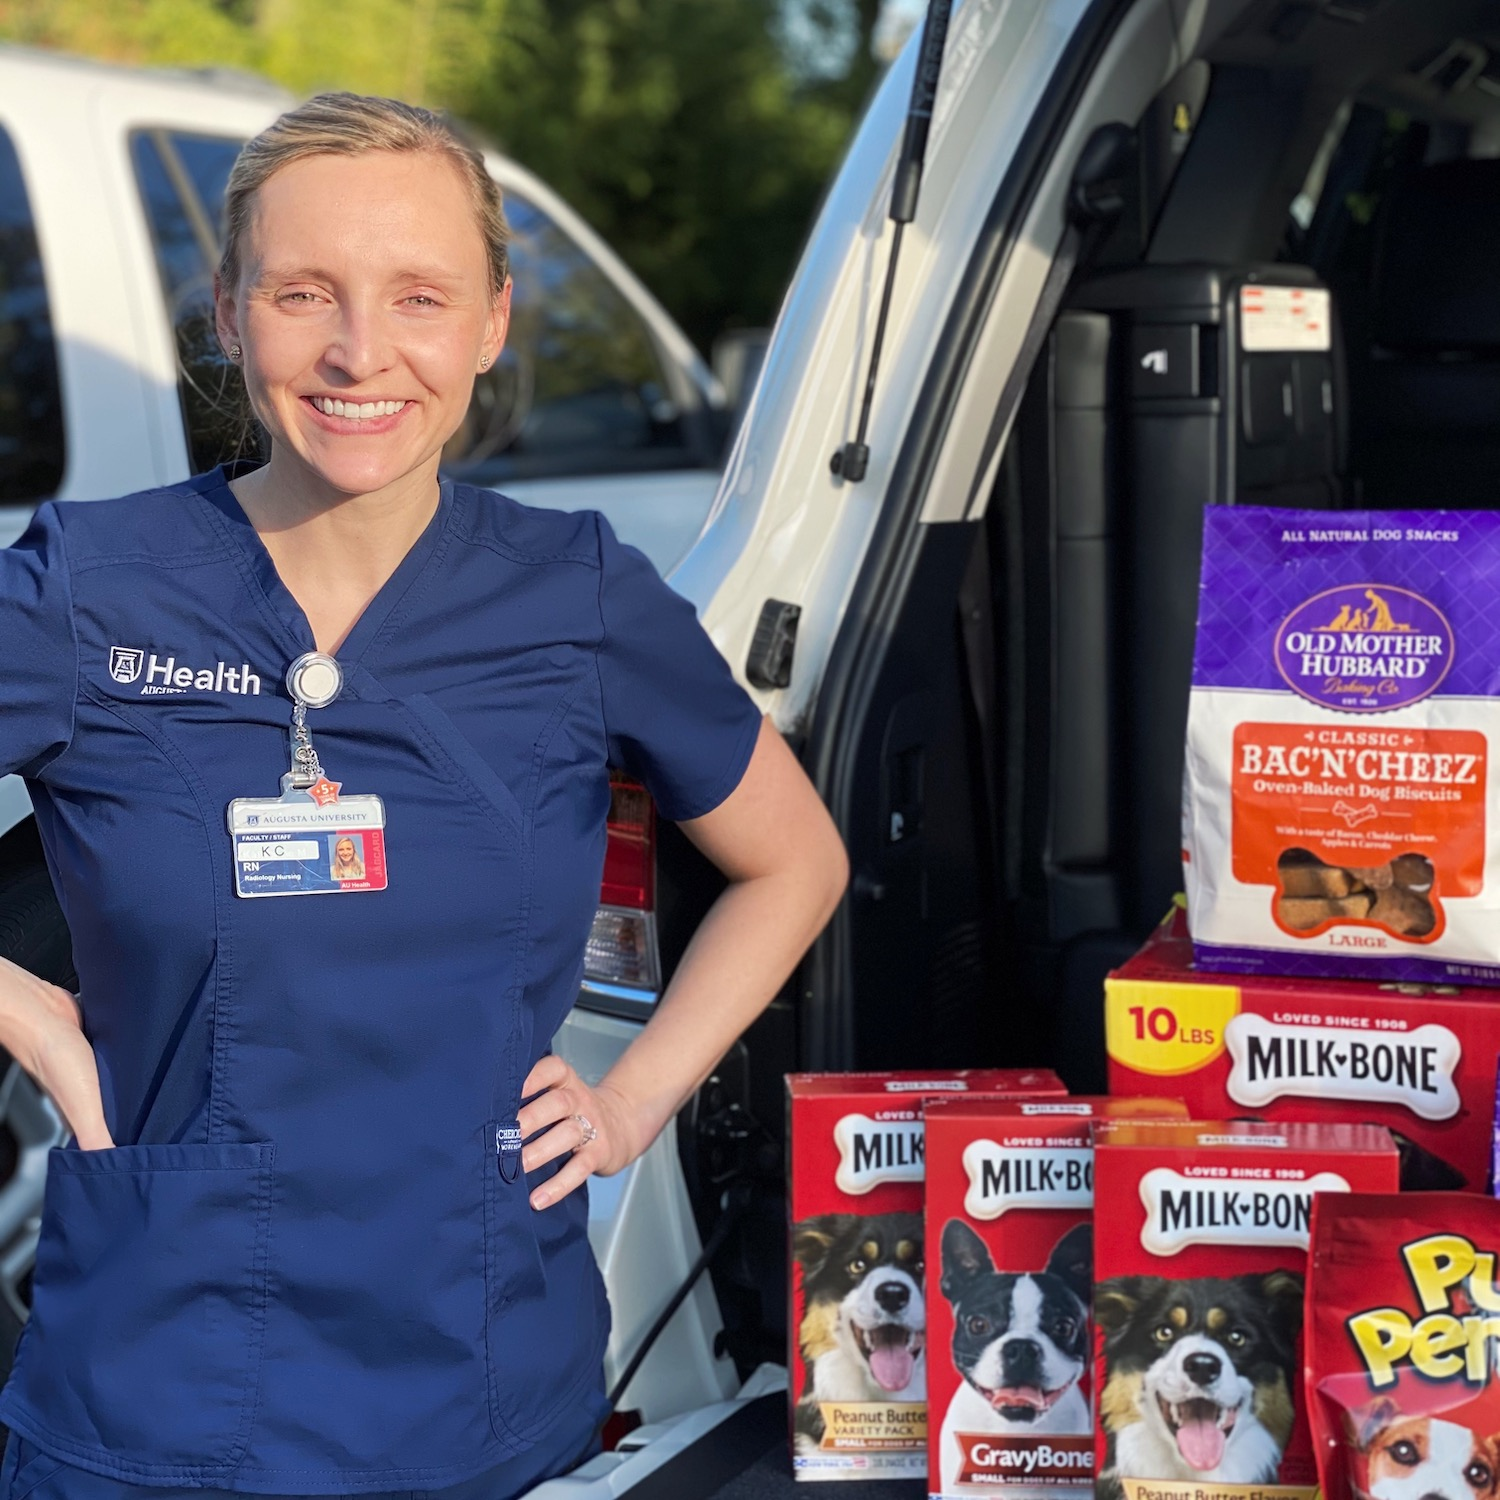 Woman in blue scrubs standing with boxes of dog treats